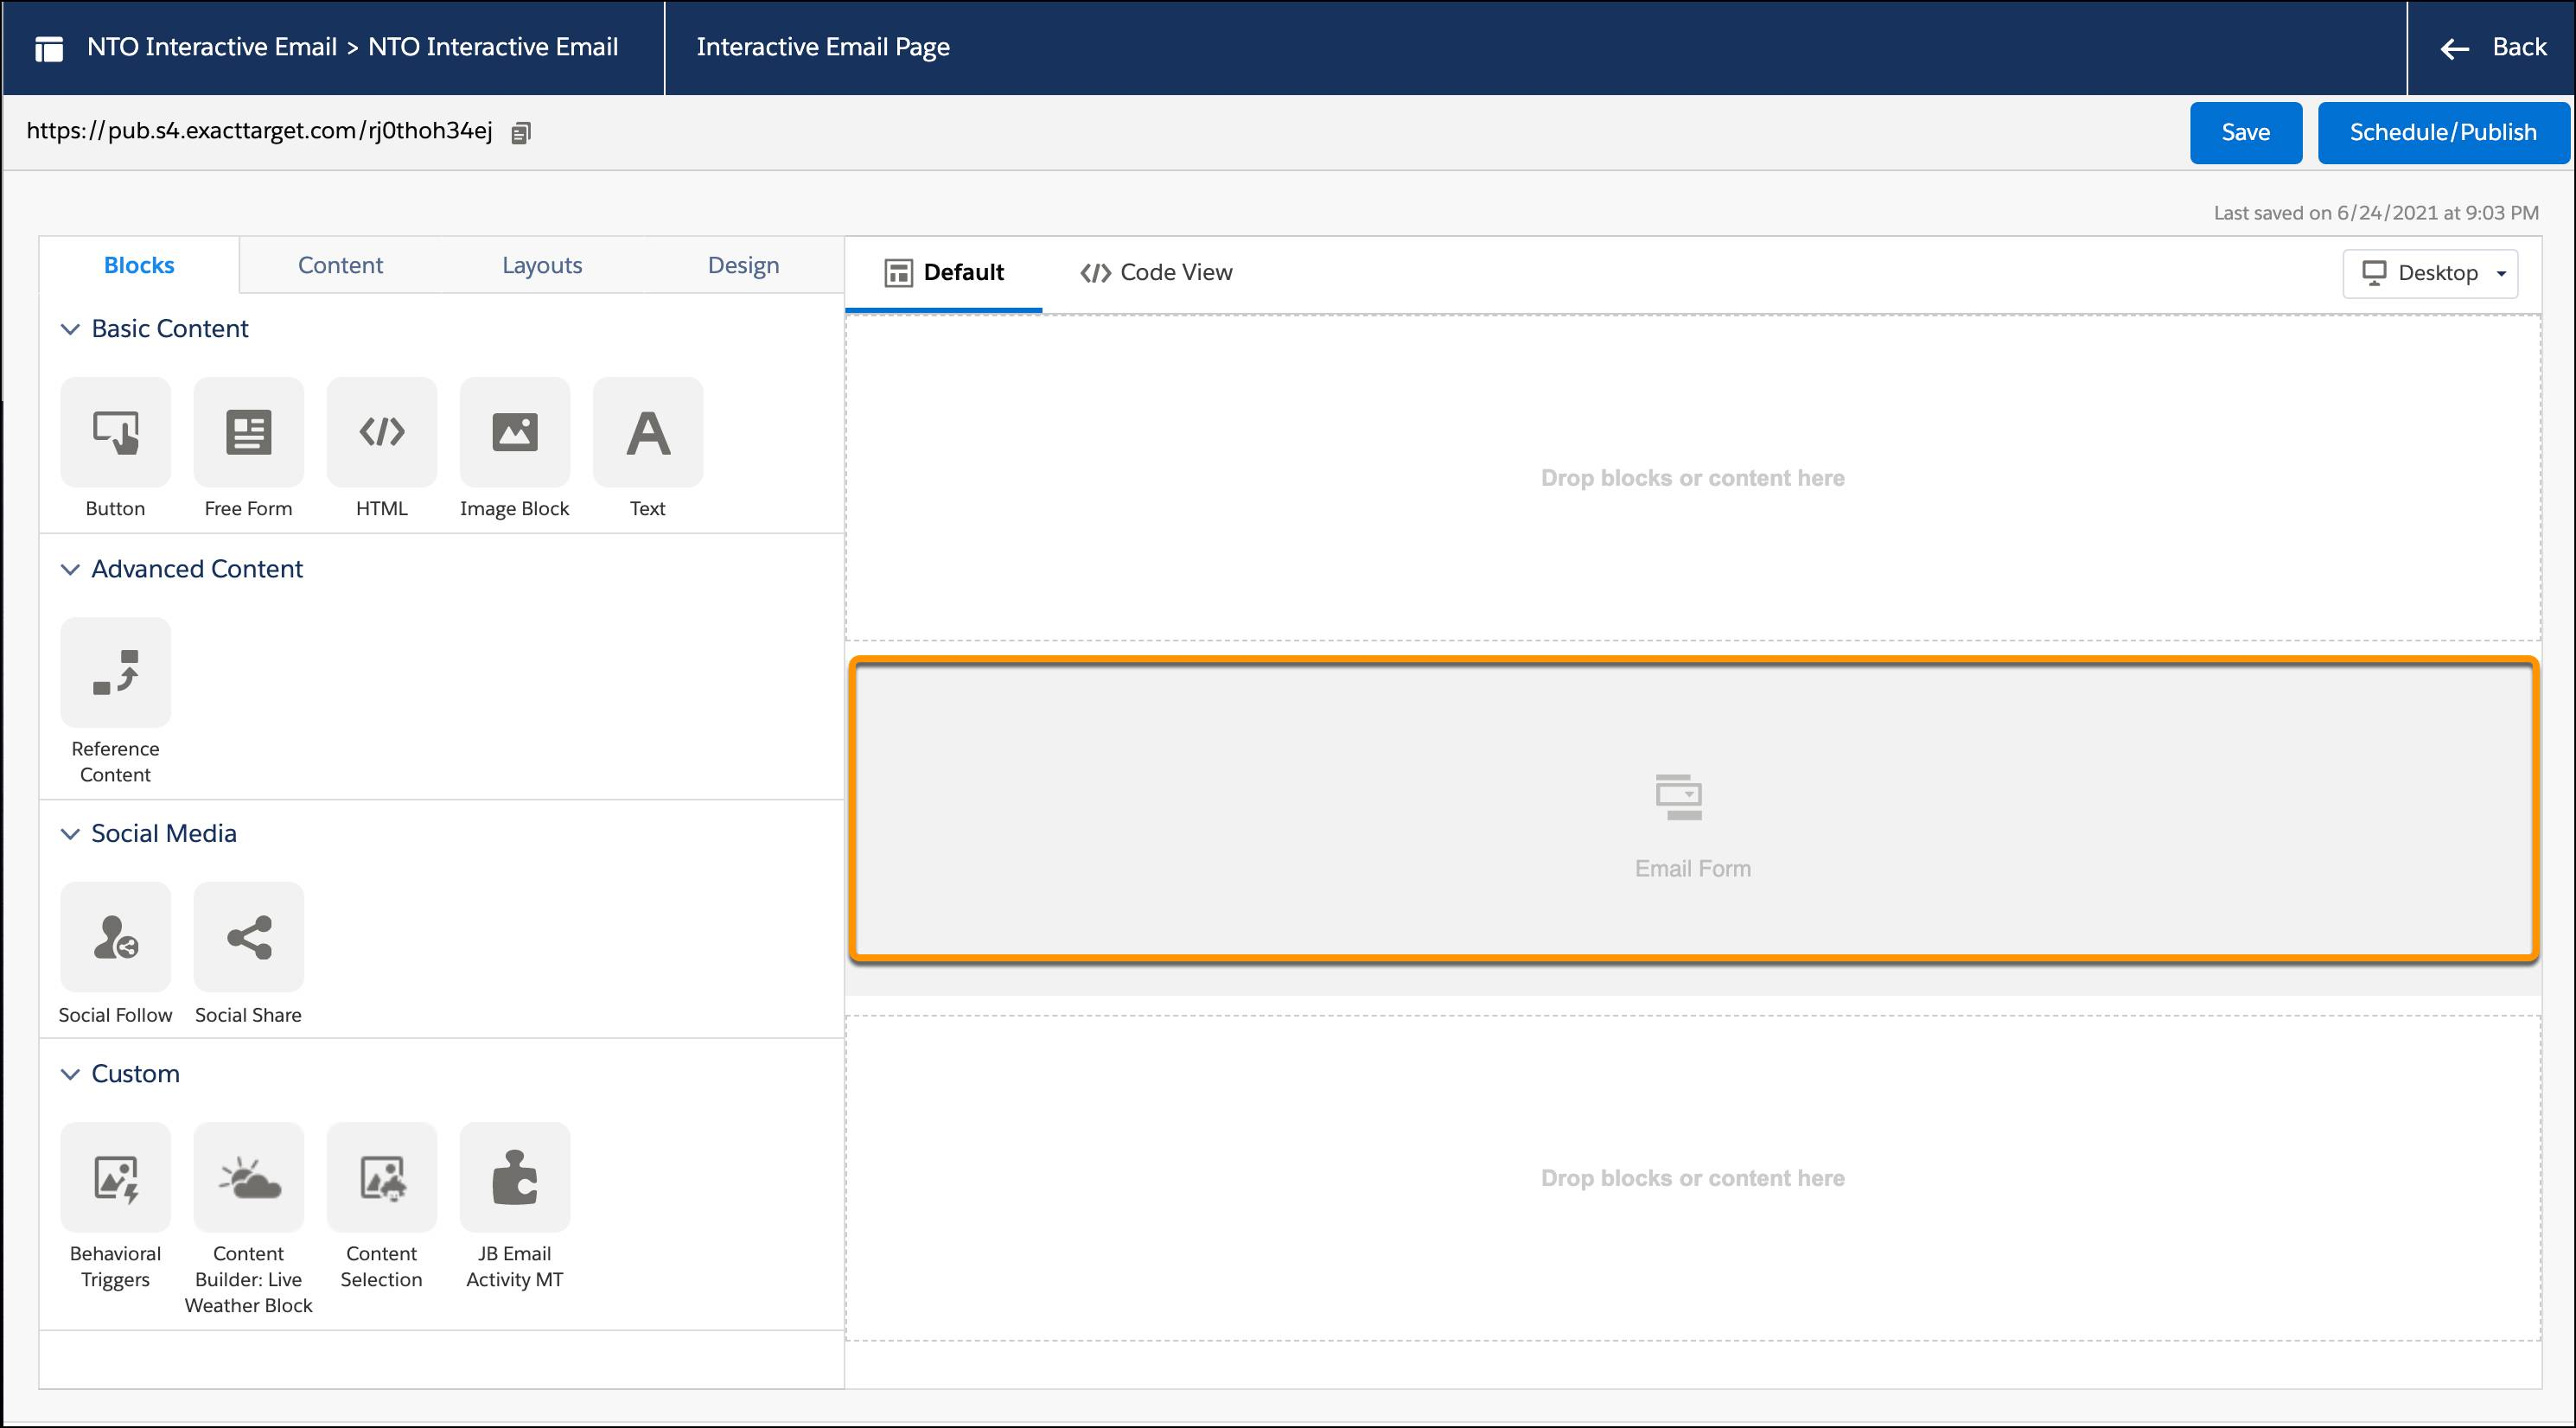 Interactive Email page with the middle row, Email Form, selected and circled.